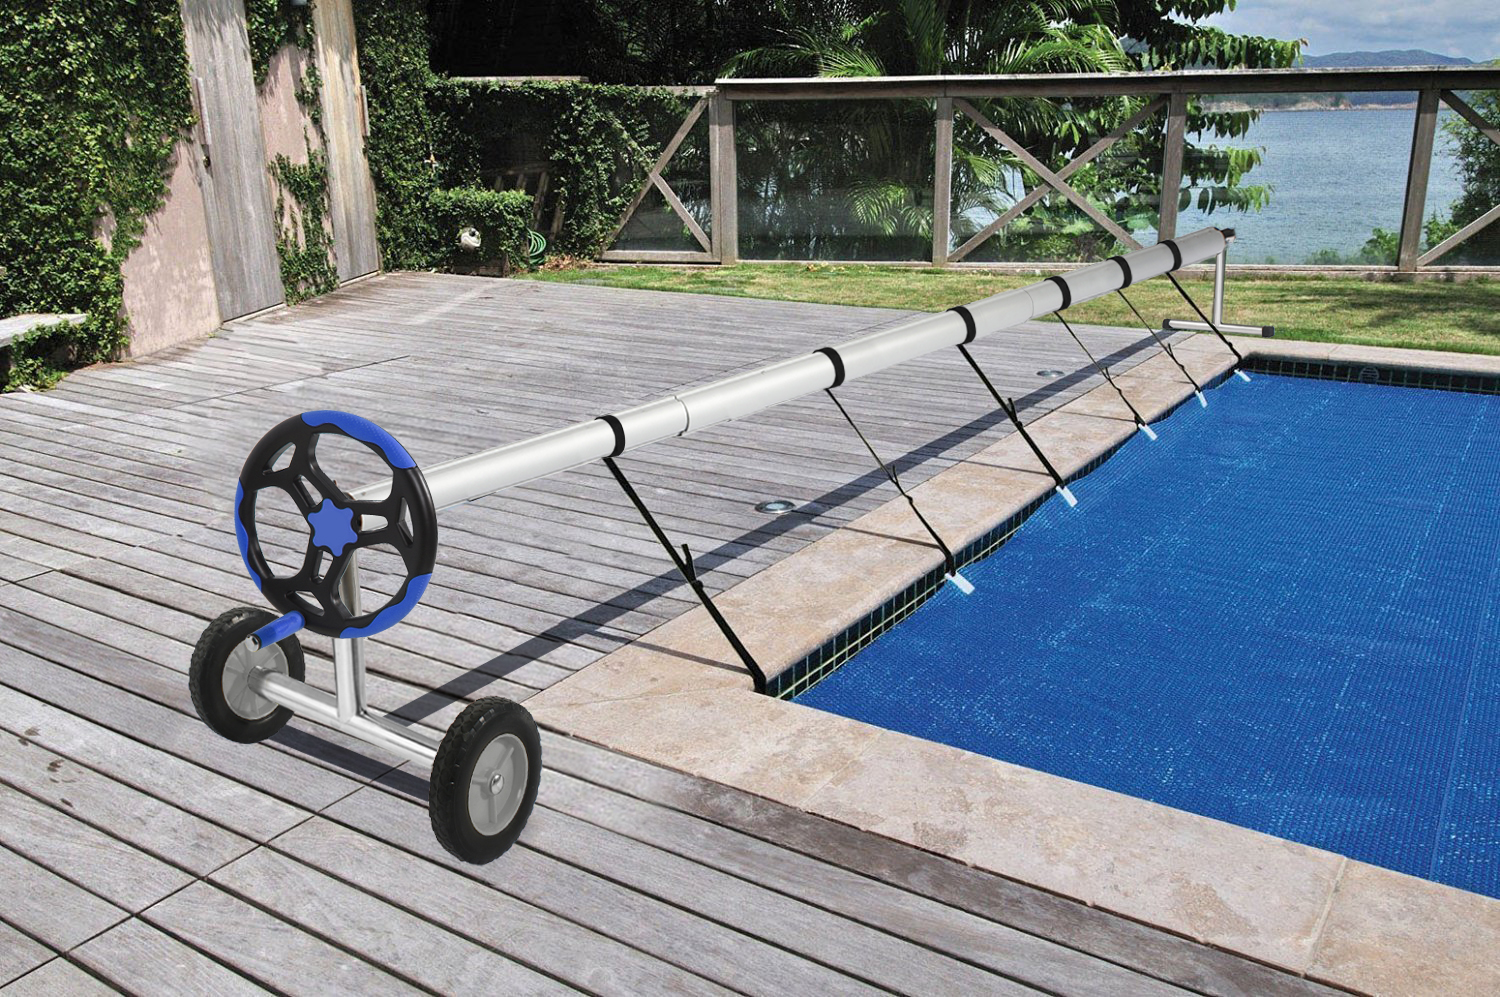 Details about Extra long Stainless Steel Inground Solar Cover Swimming Pool  Cover Reel